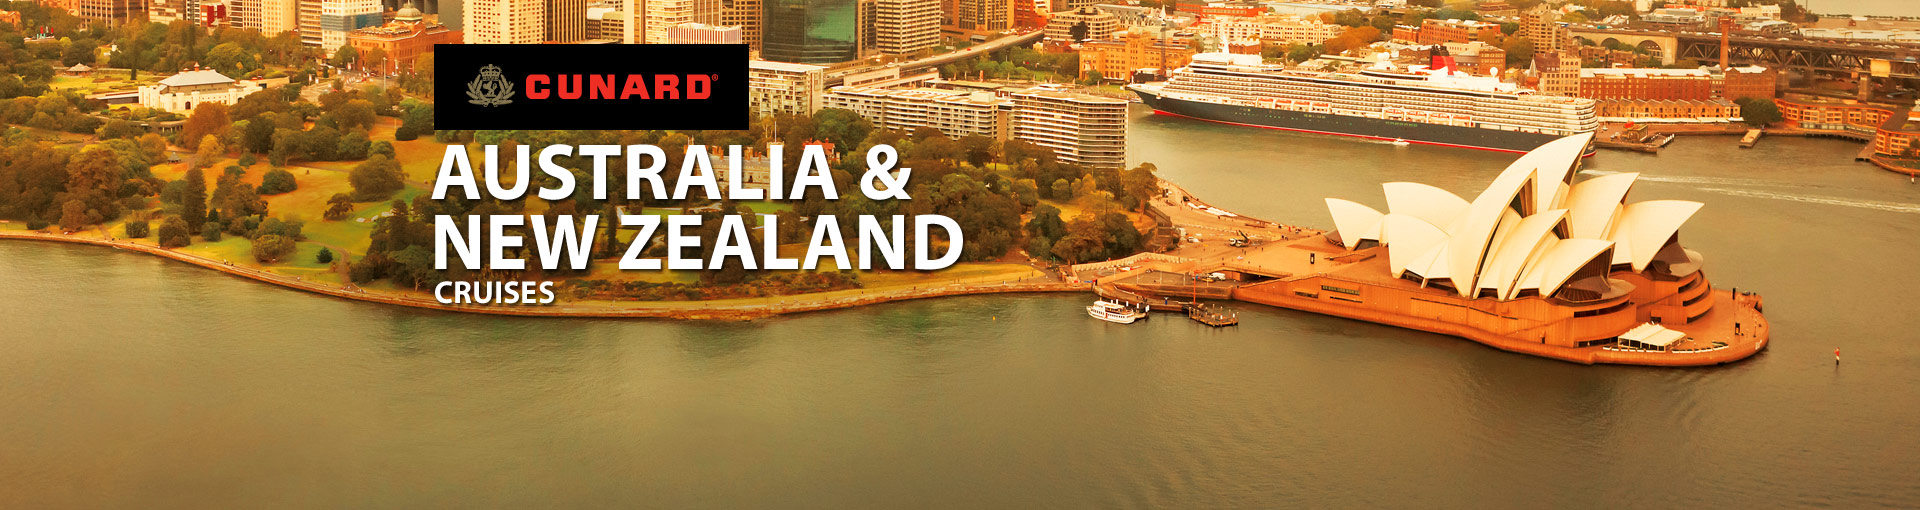 Cunard Line Australia and New Zealand Cruises